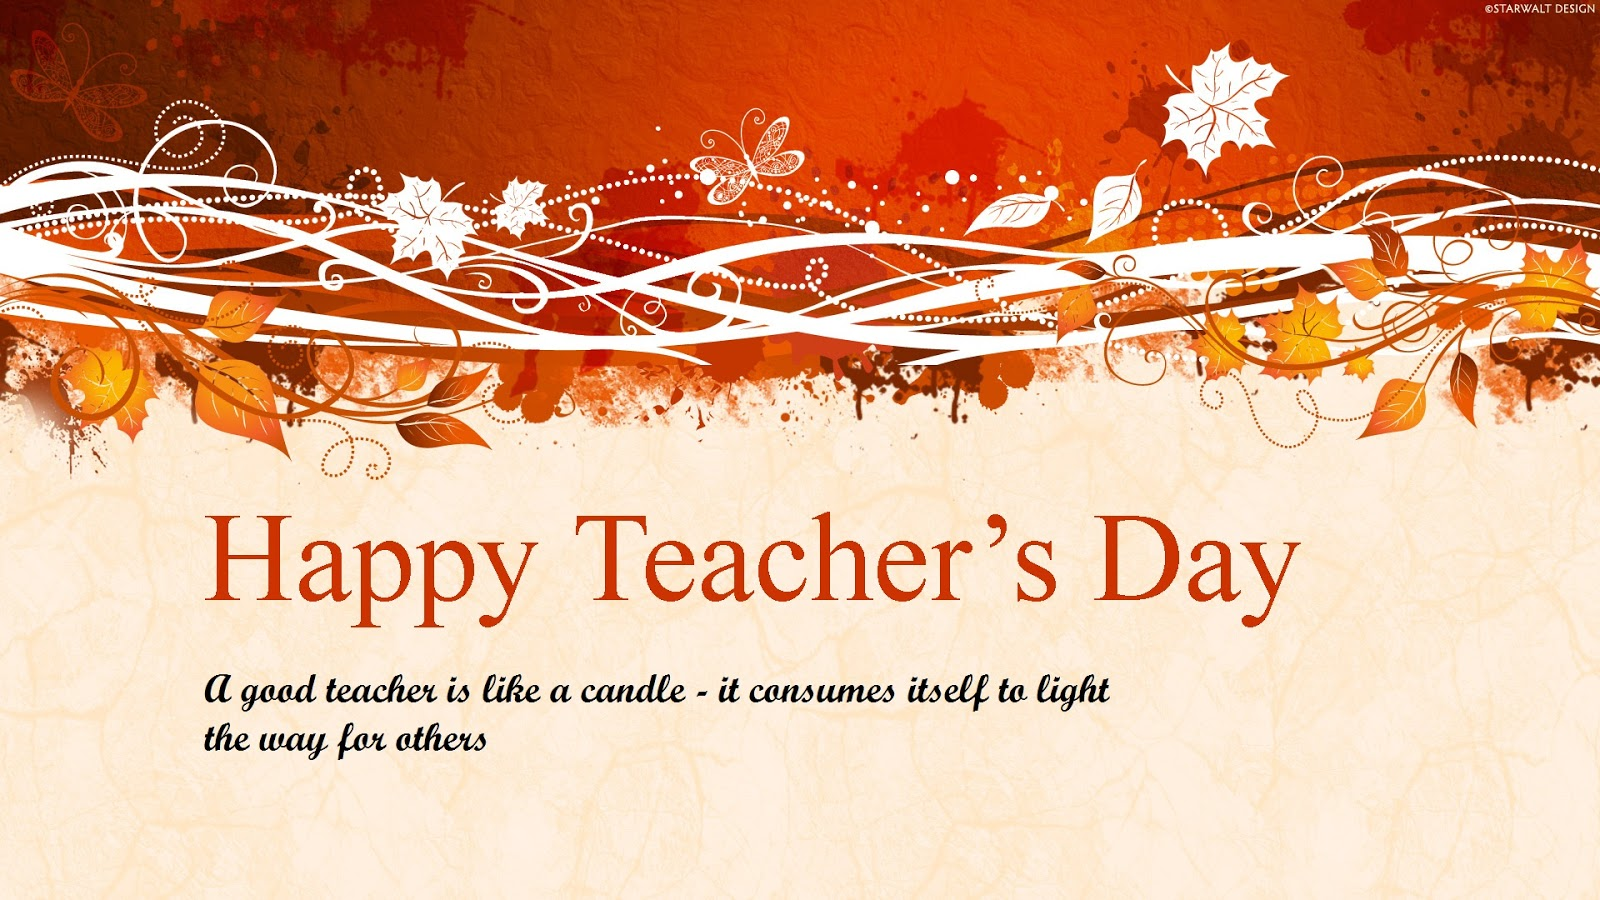 Teachers Day Images Pictures Cards Gifts Greetings Messages